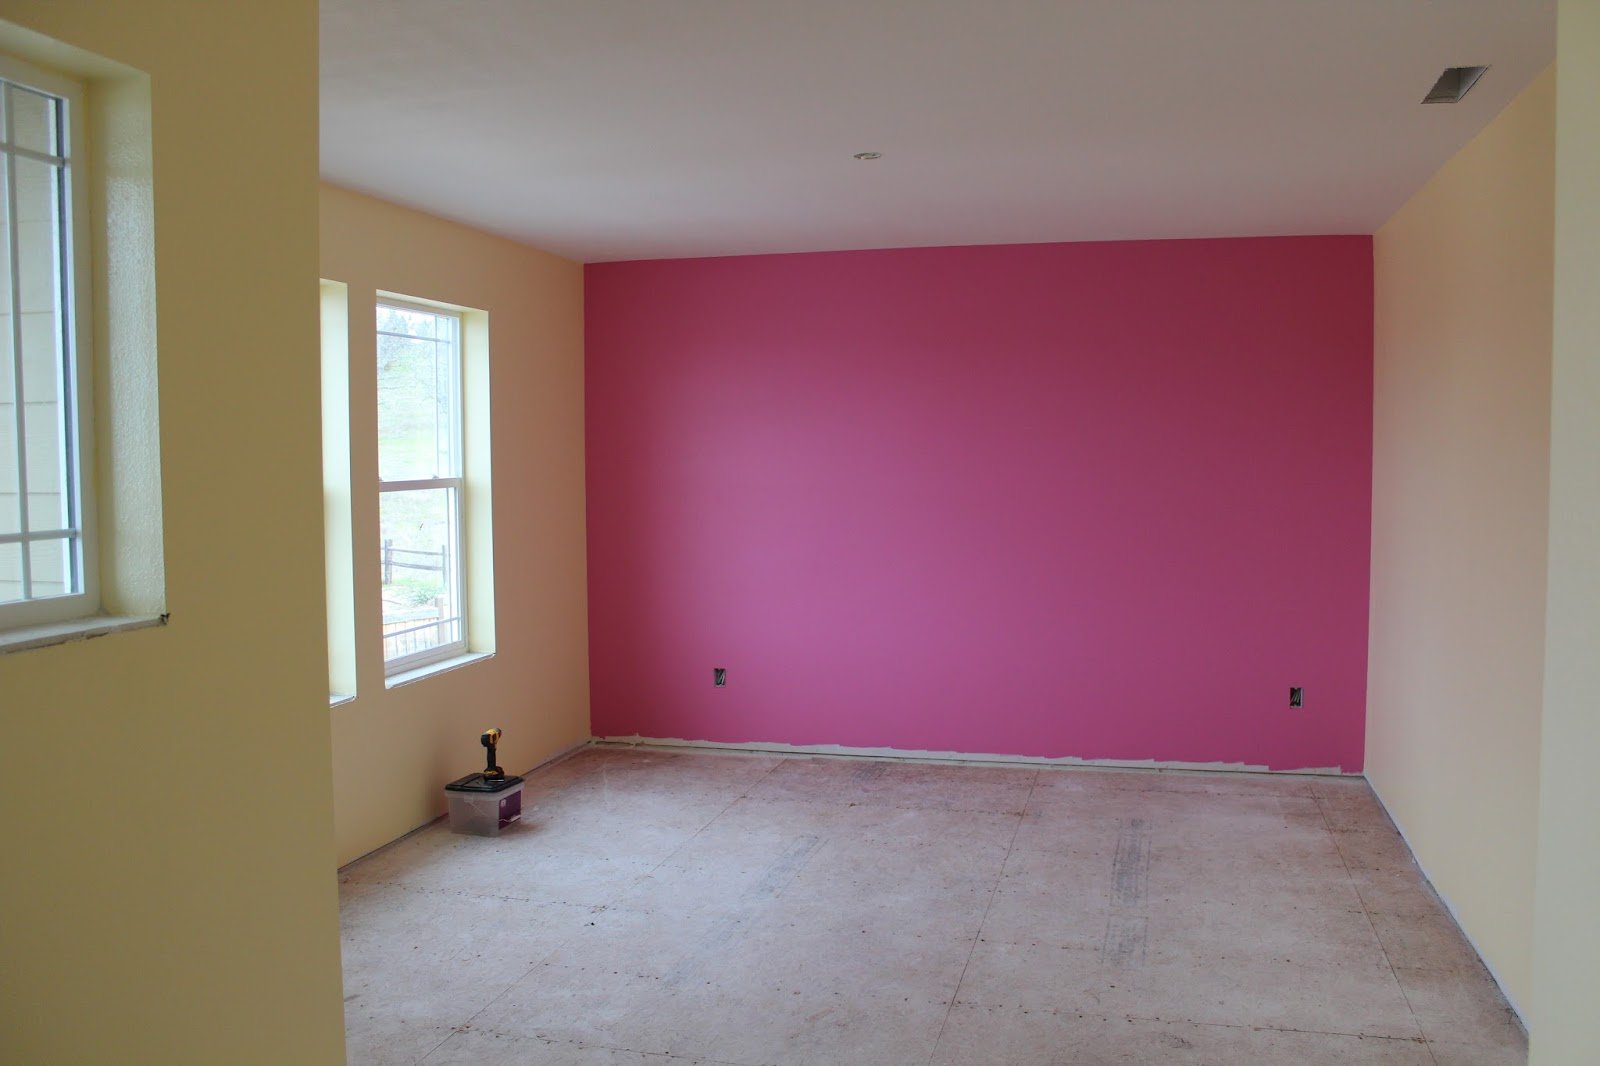 Pink Accent Wall bedroom paint accent wall | wallpress 1080p hd desktop